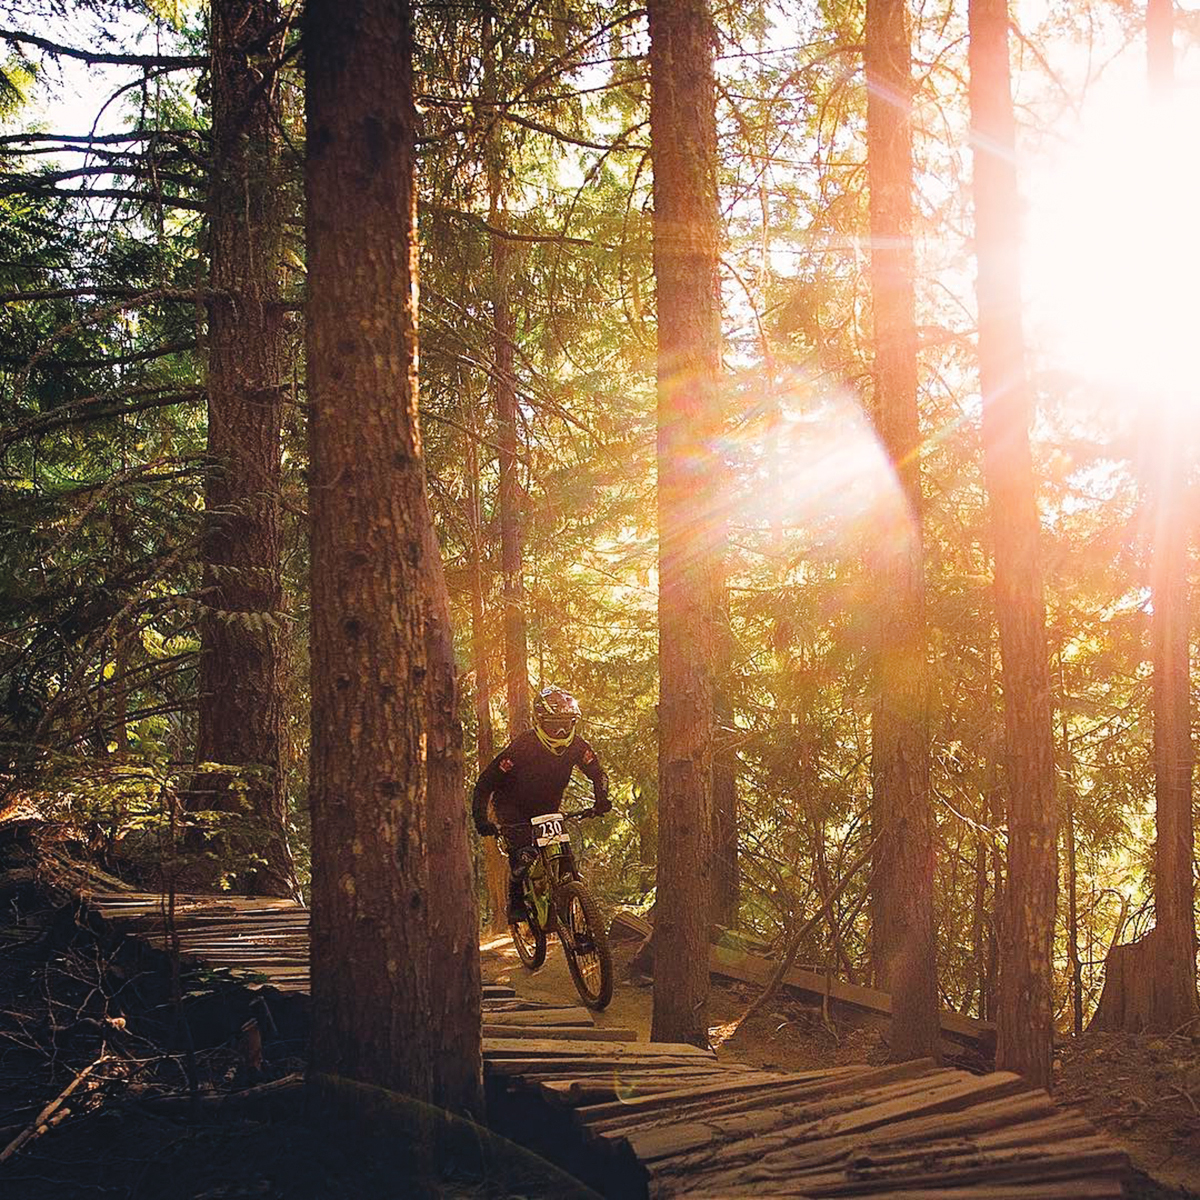 Best routes for mountain biking